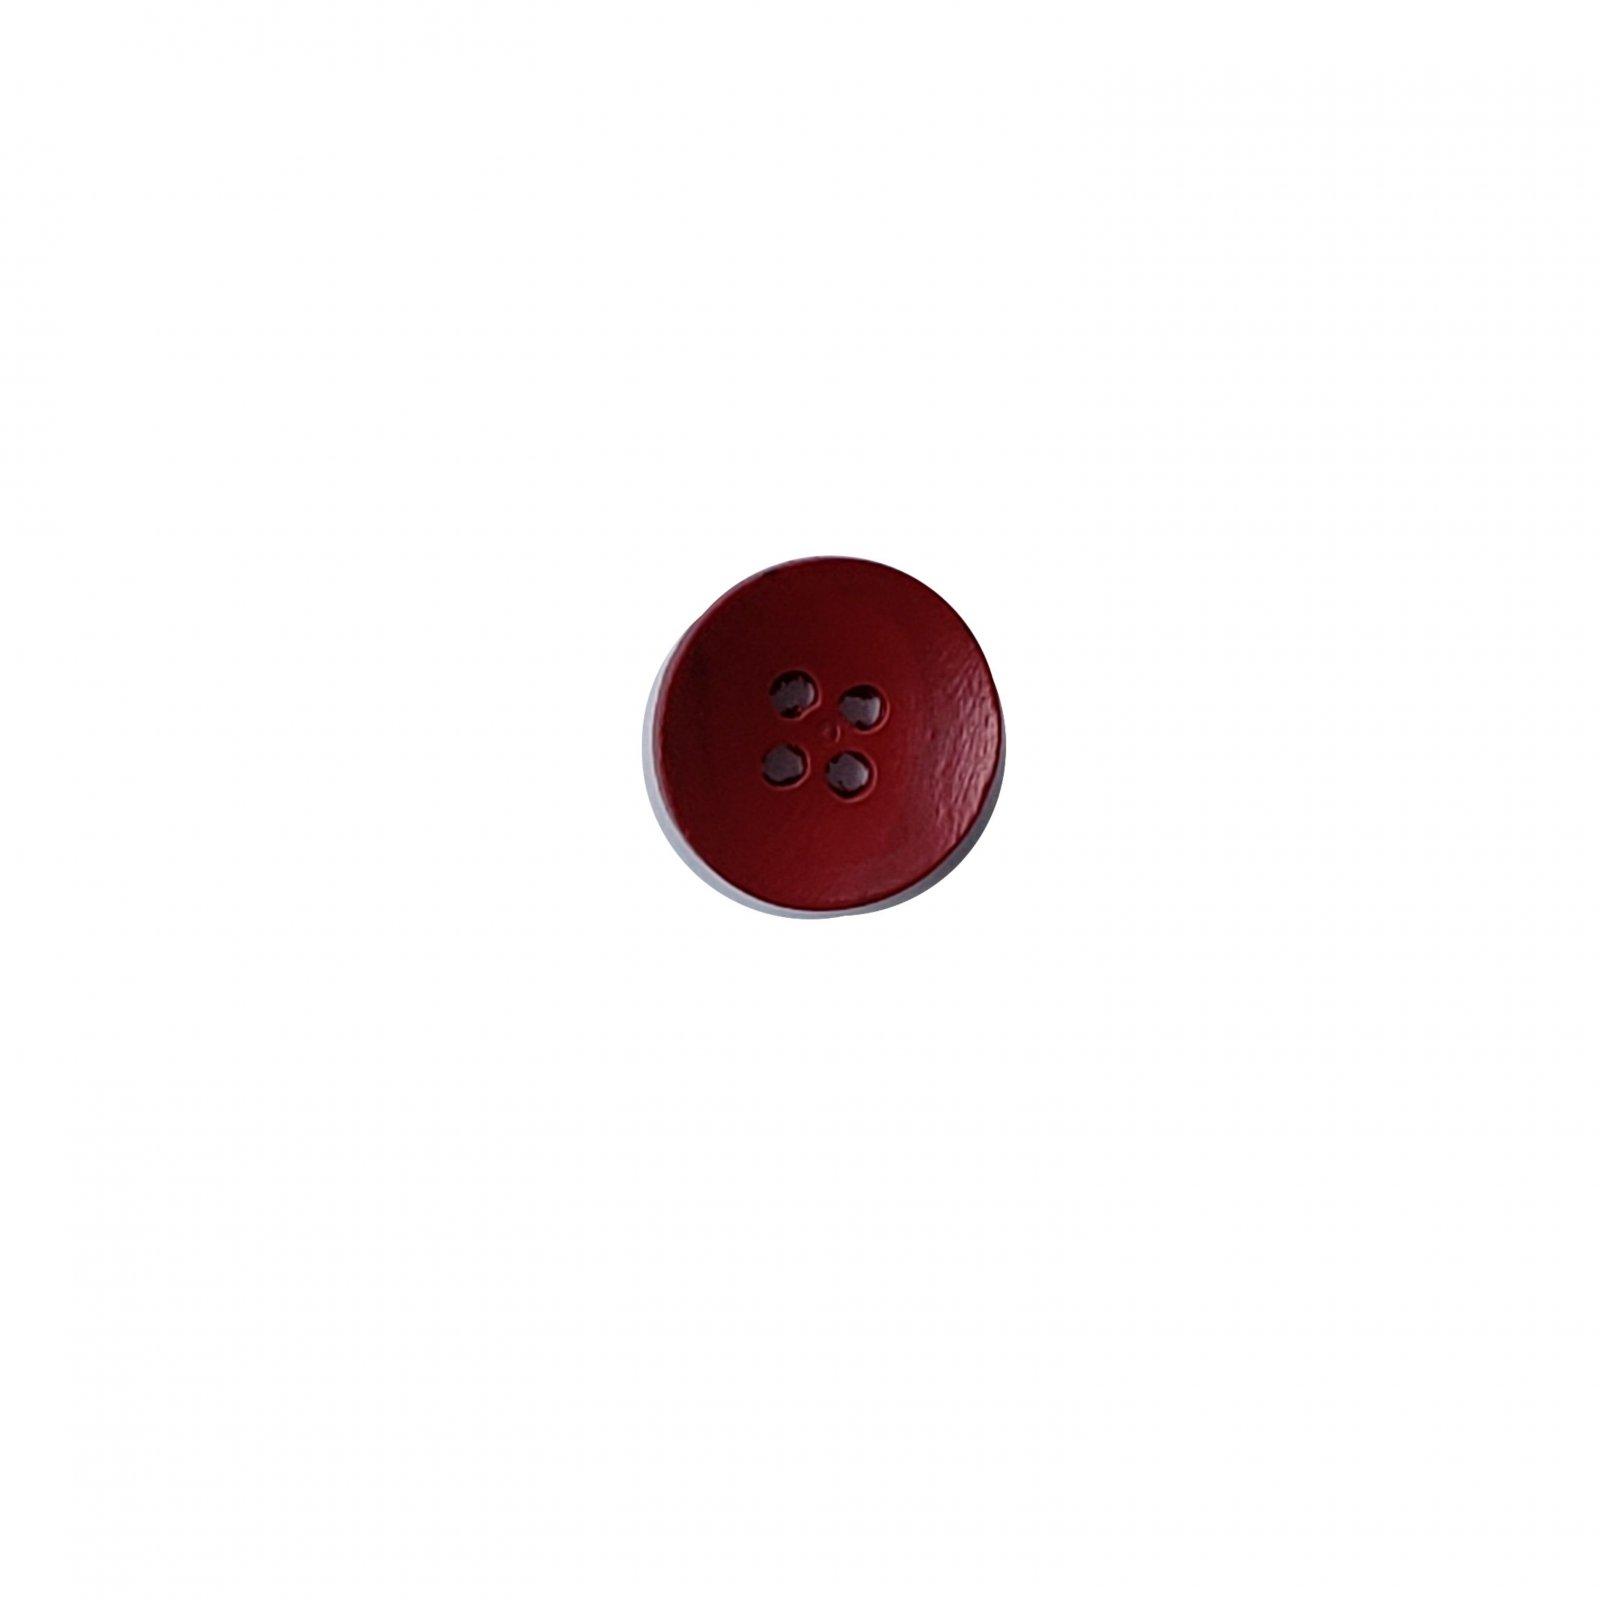 Painted Wooden Buttons - 15mm